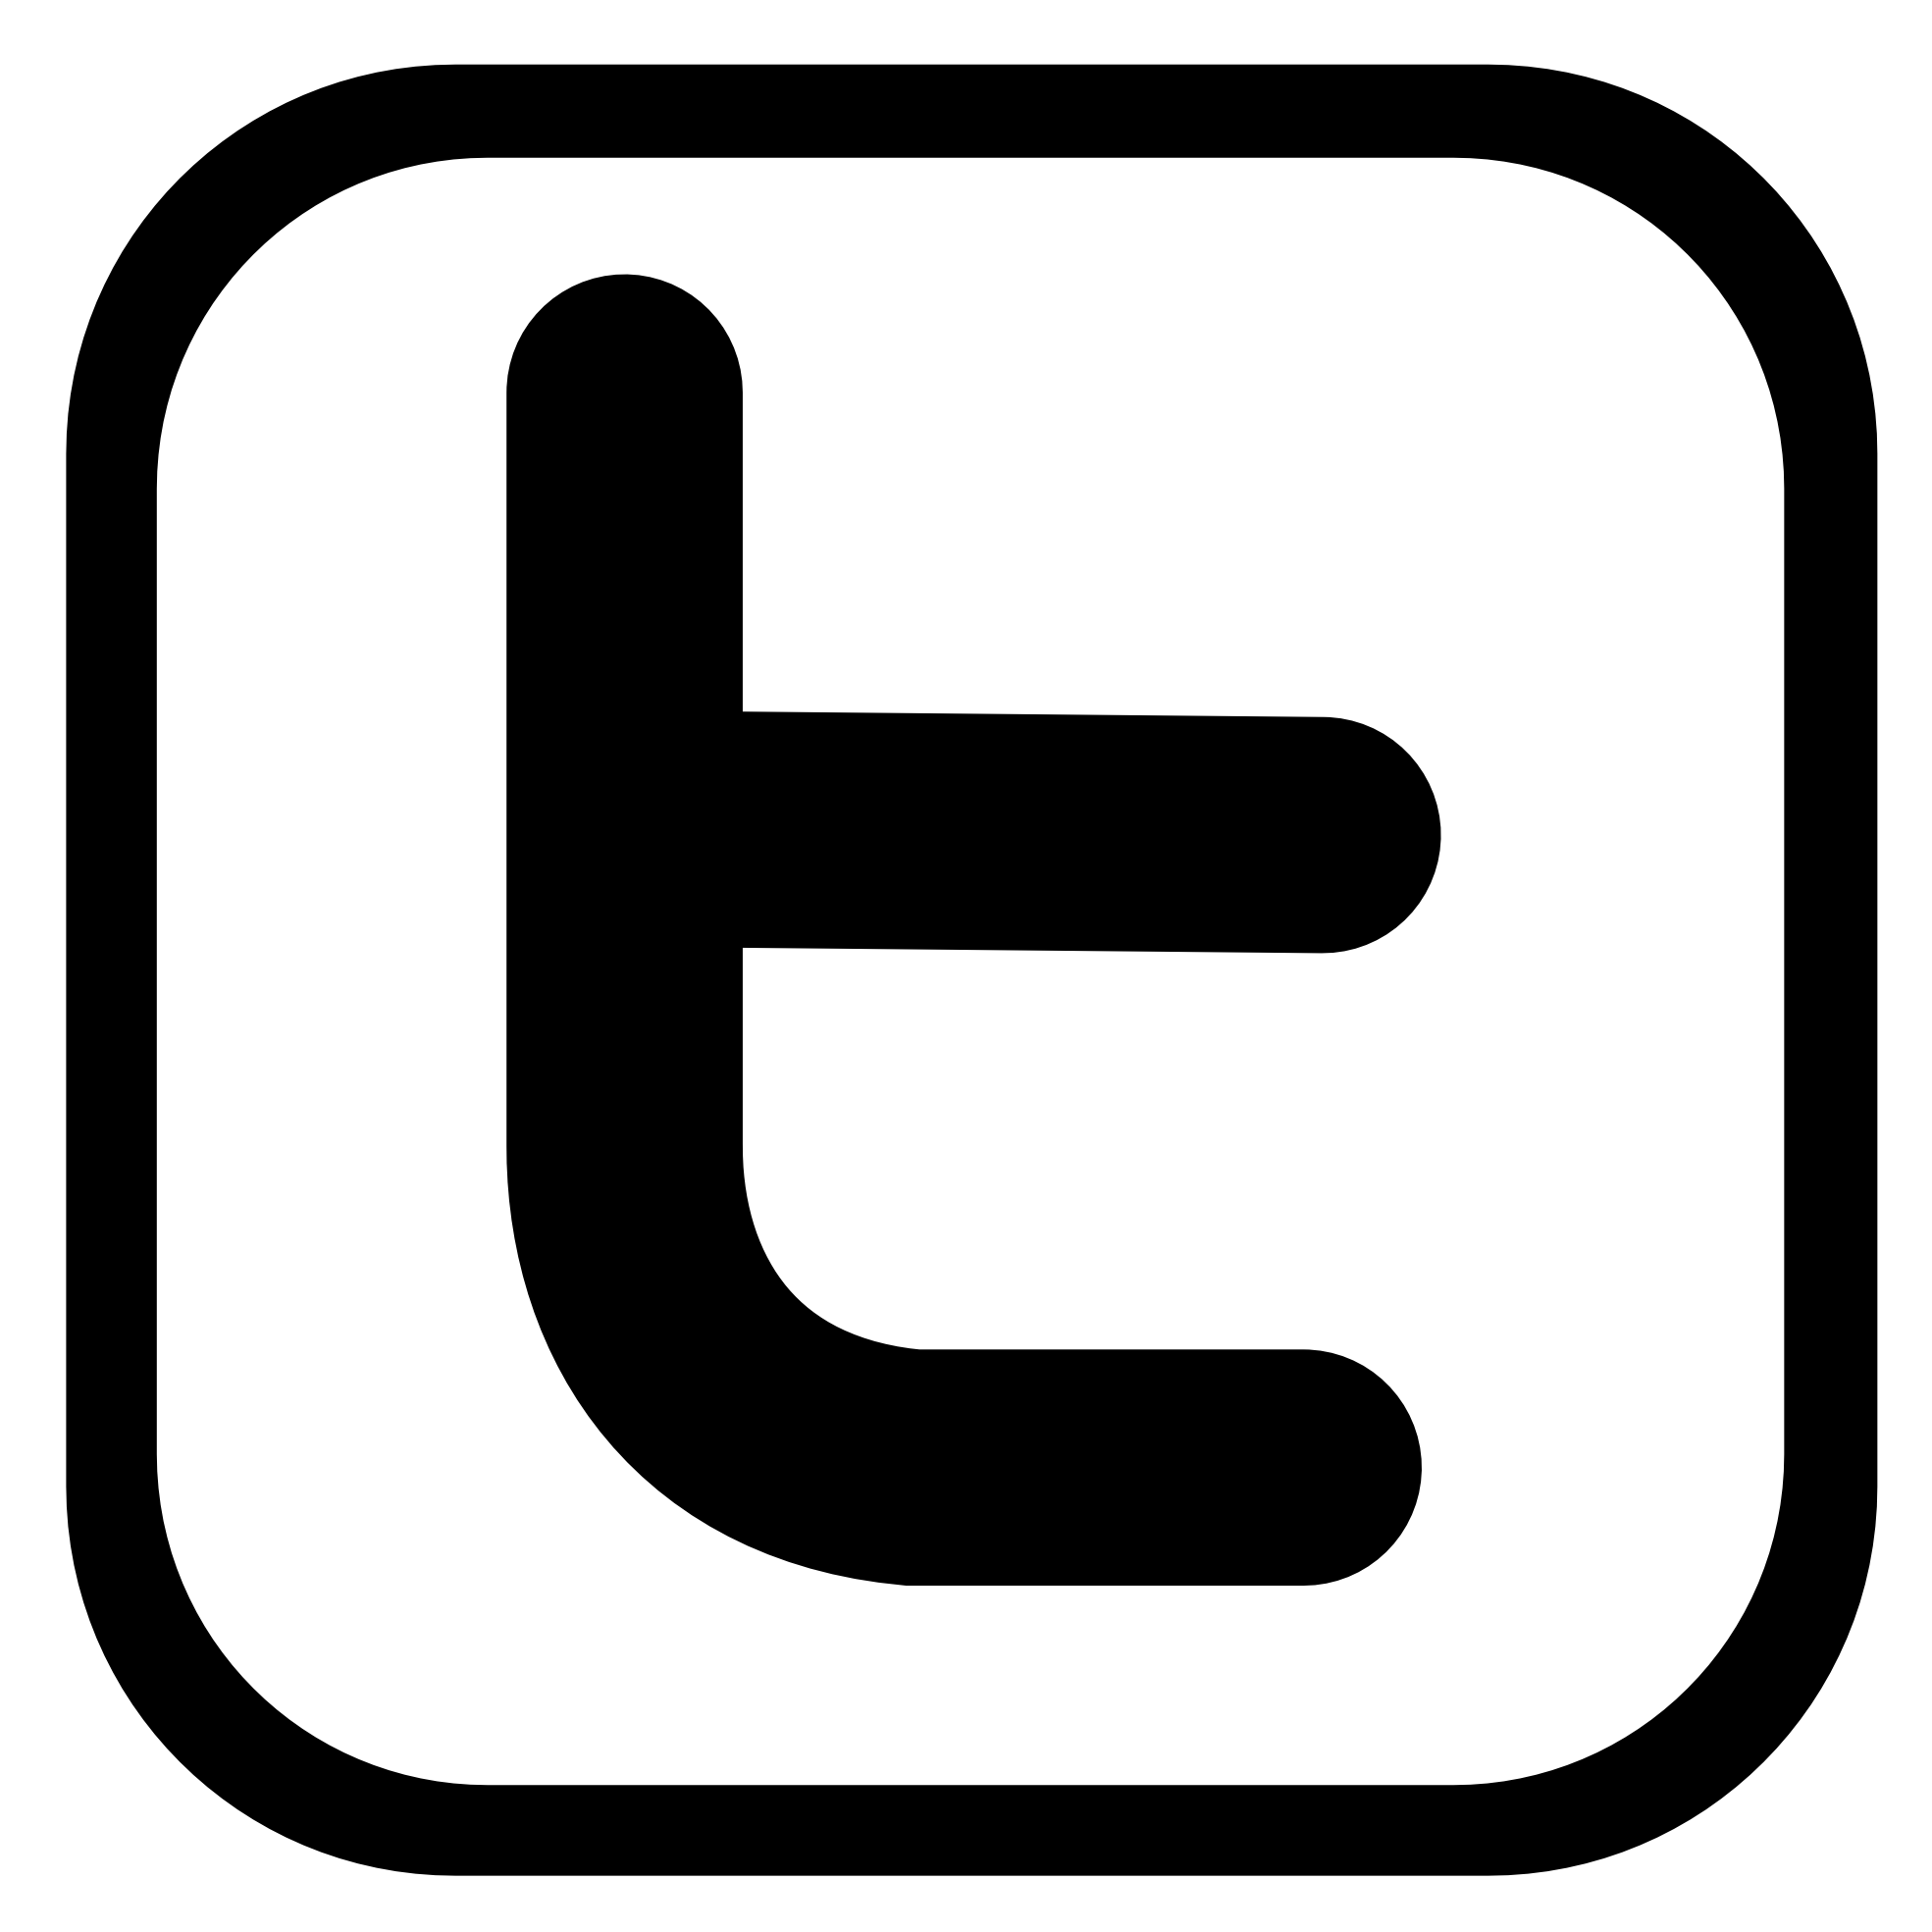 15 Black Twitter Icon Images - Twitter Icon Black, Black ...